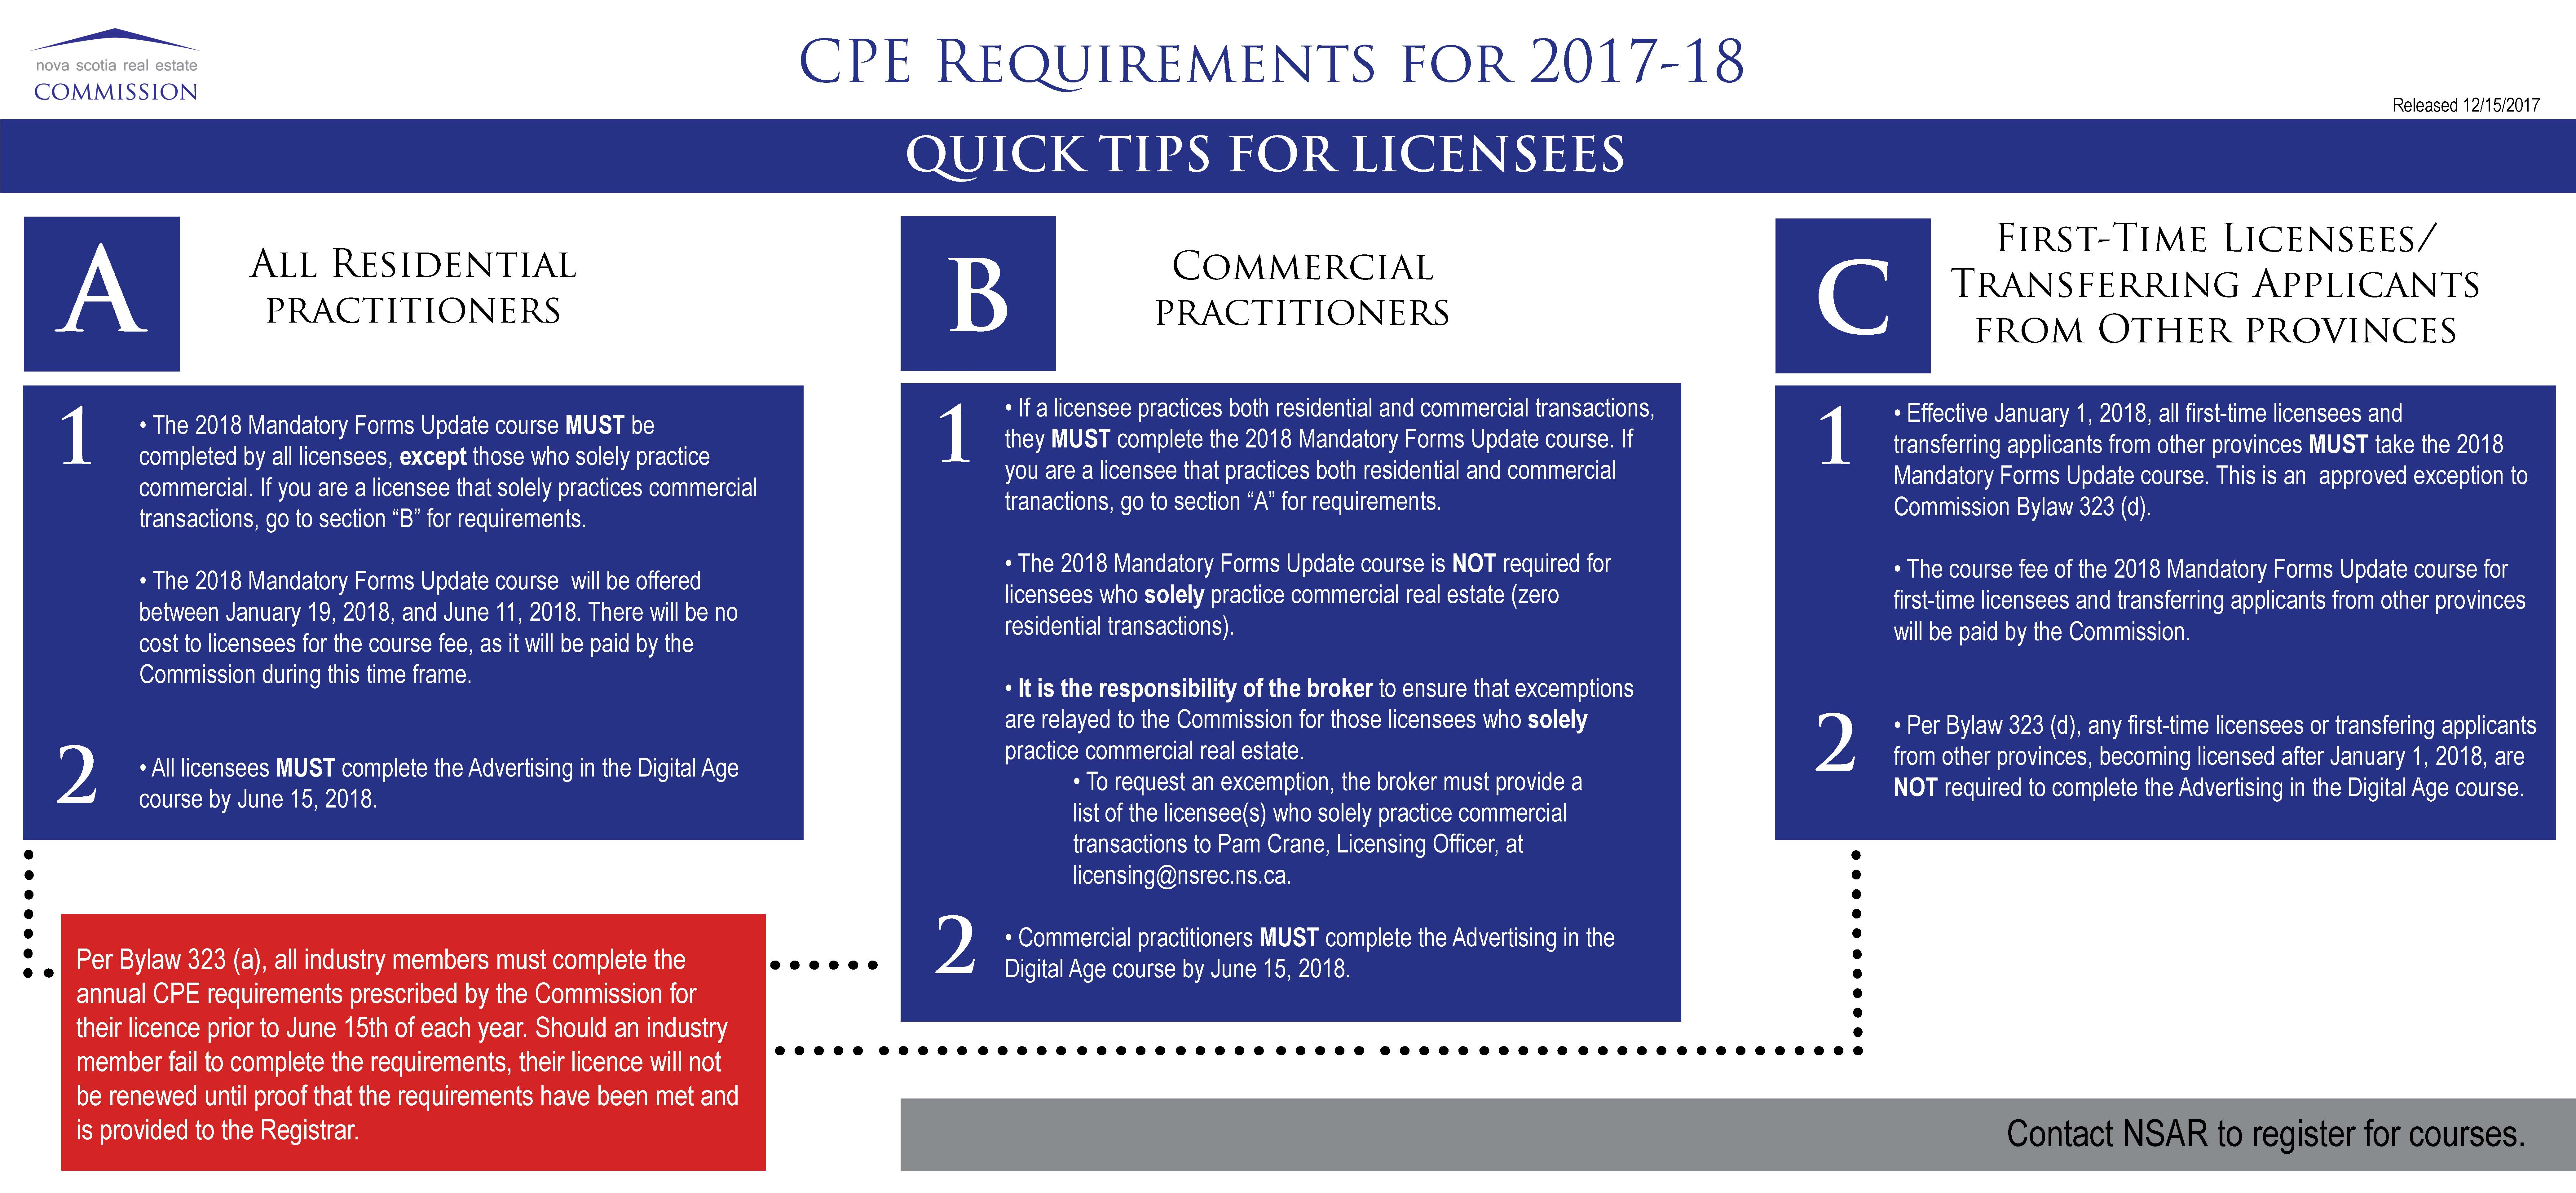 NEW Continuing Professional Education (CPE) Requirements